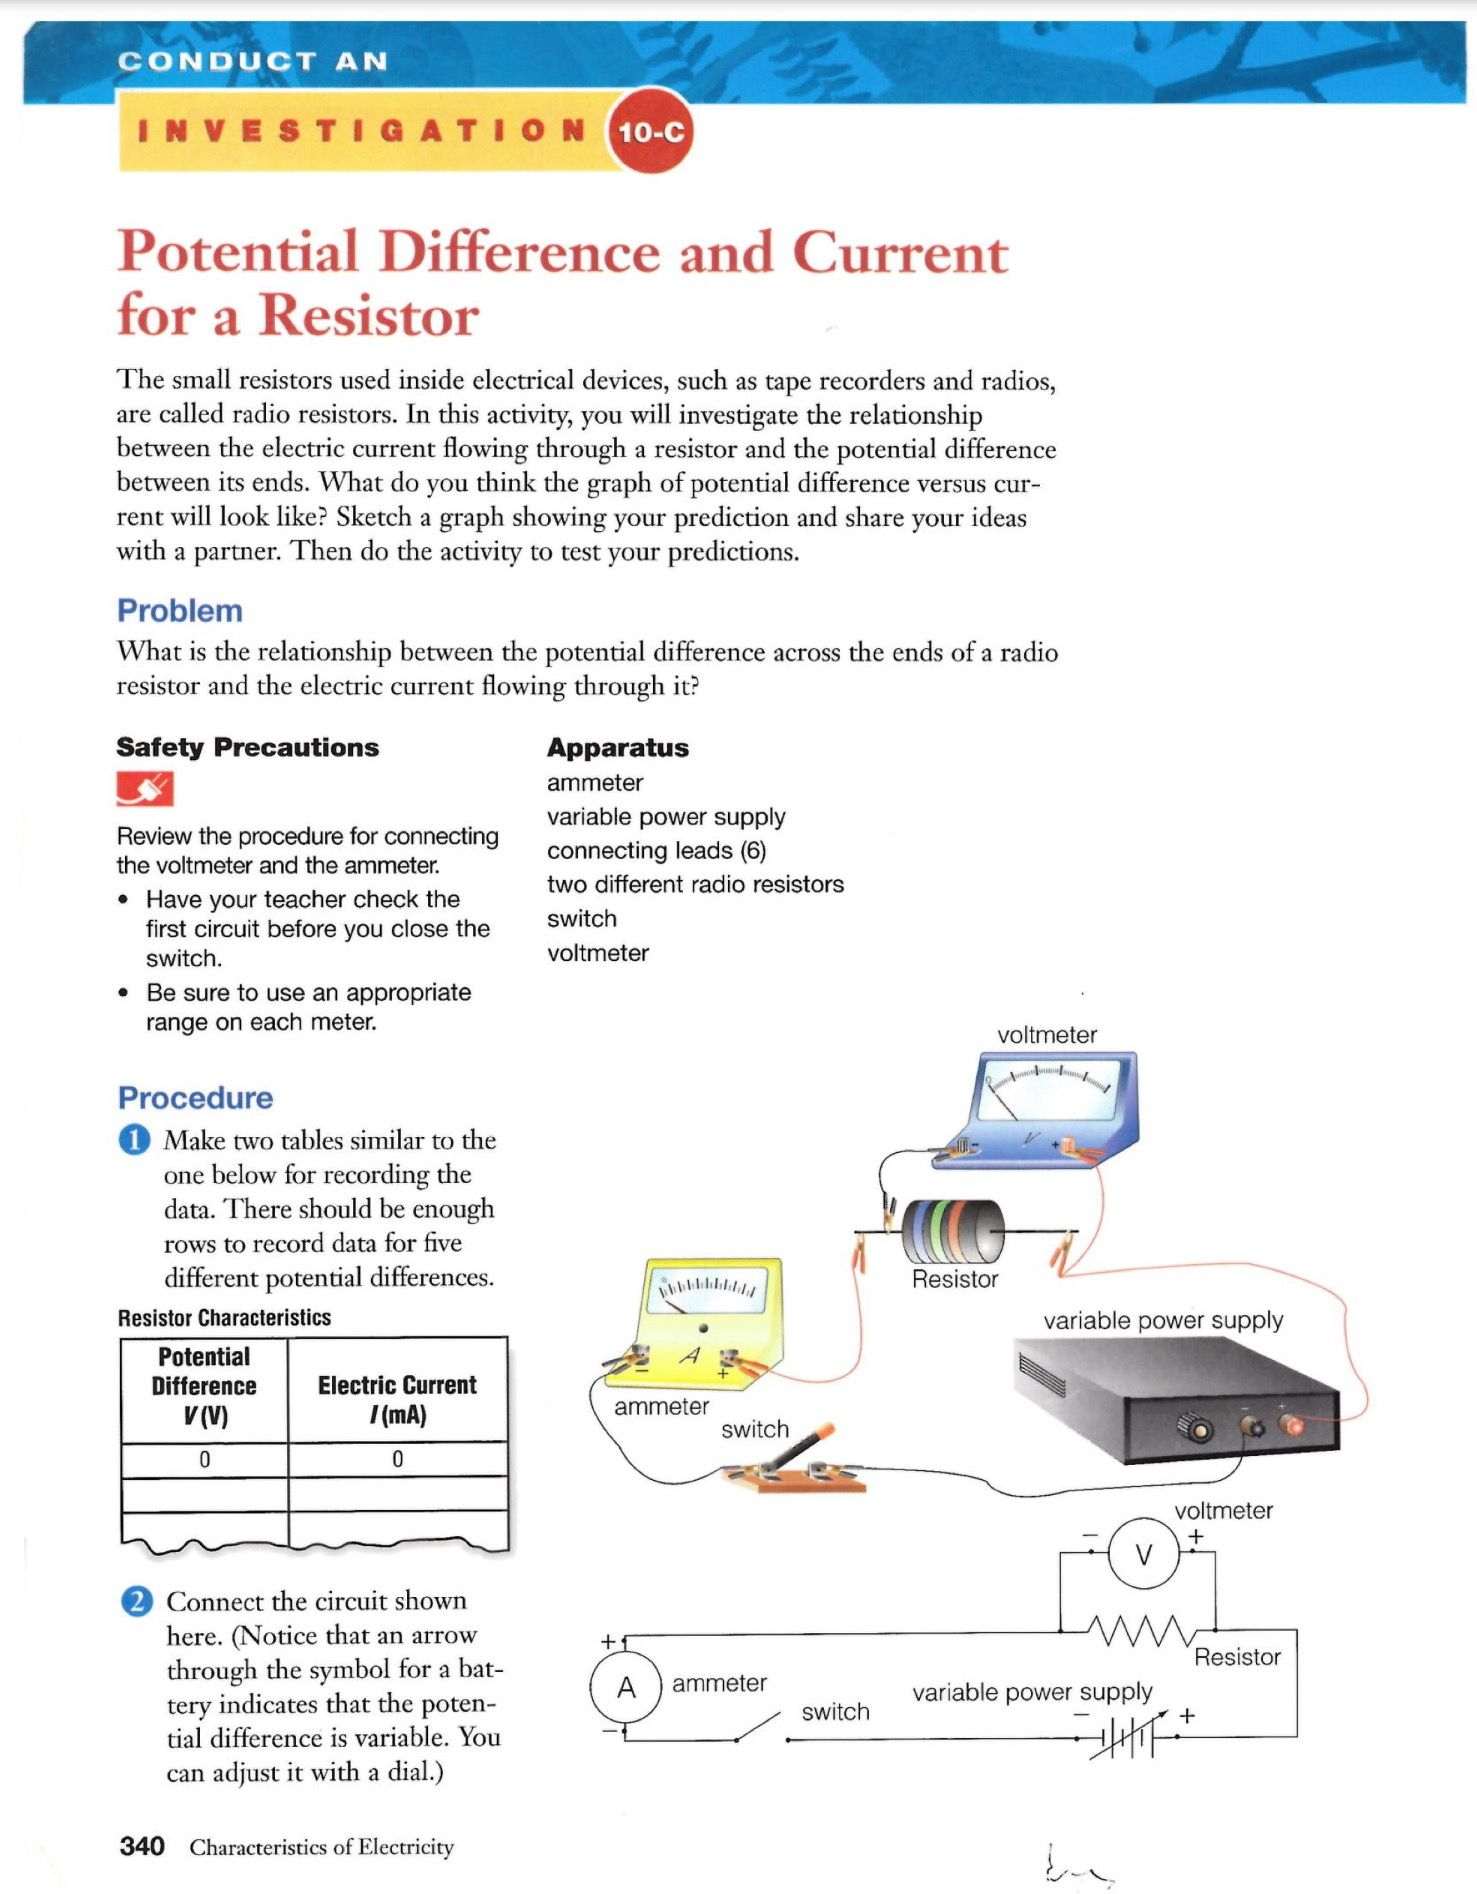 Potential Difference And Current For A Resistor Laboratory